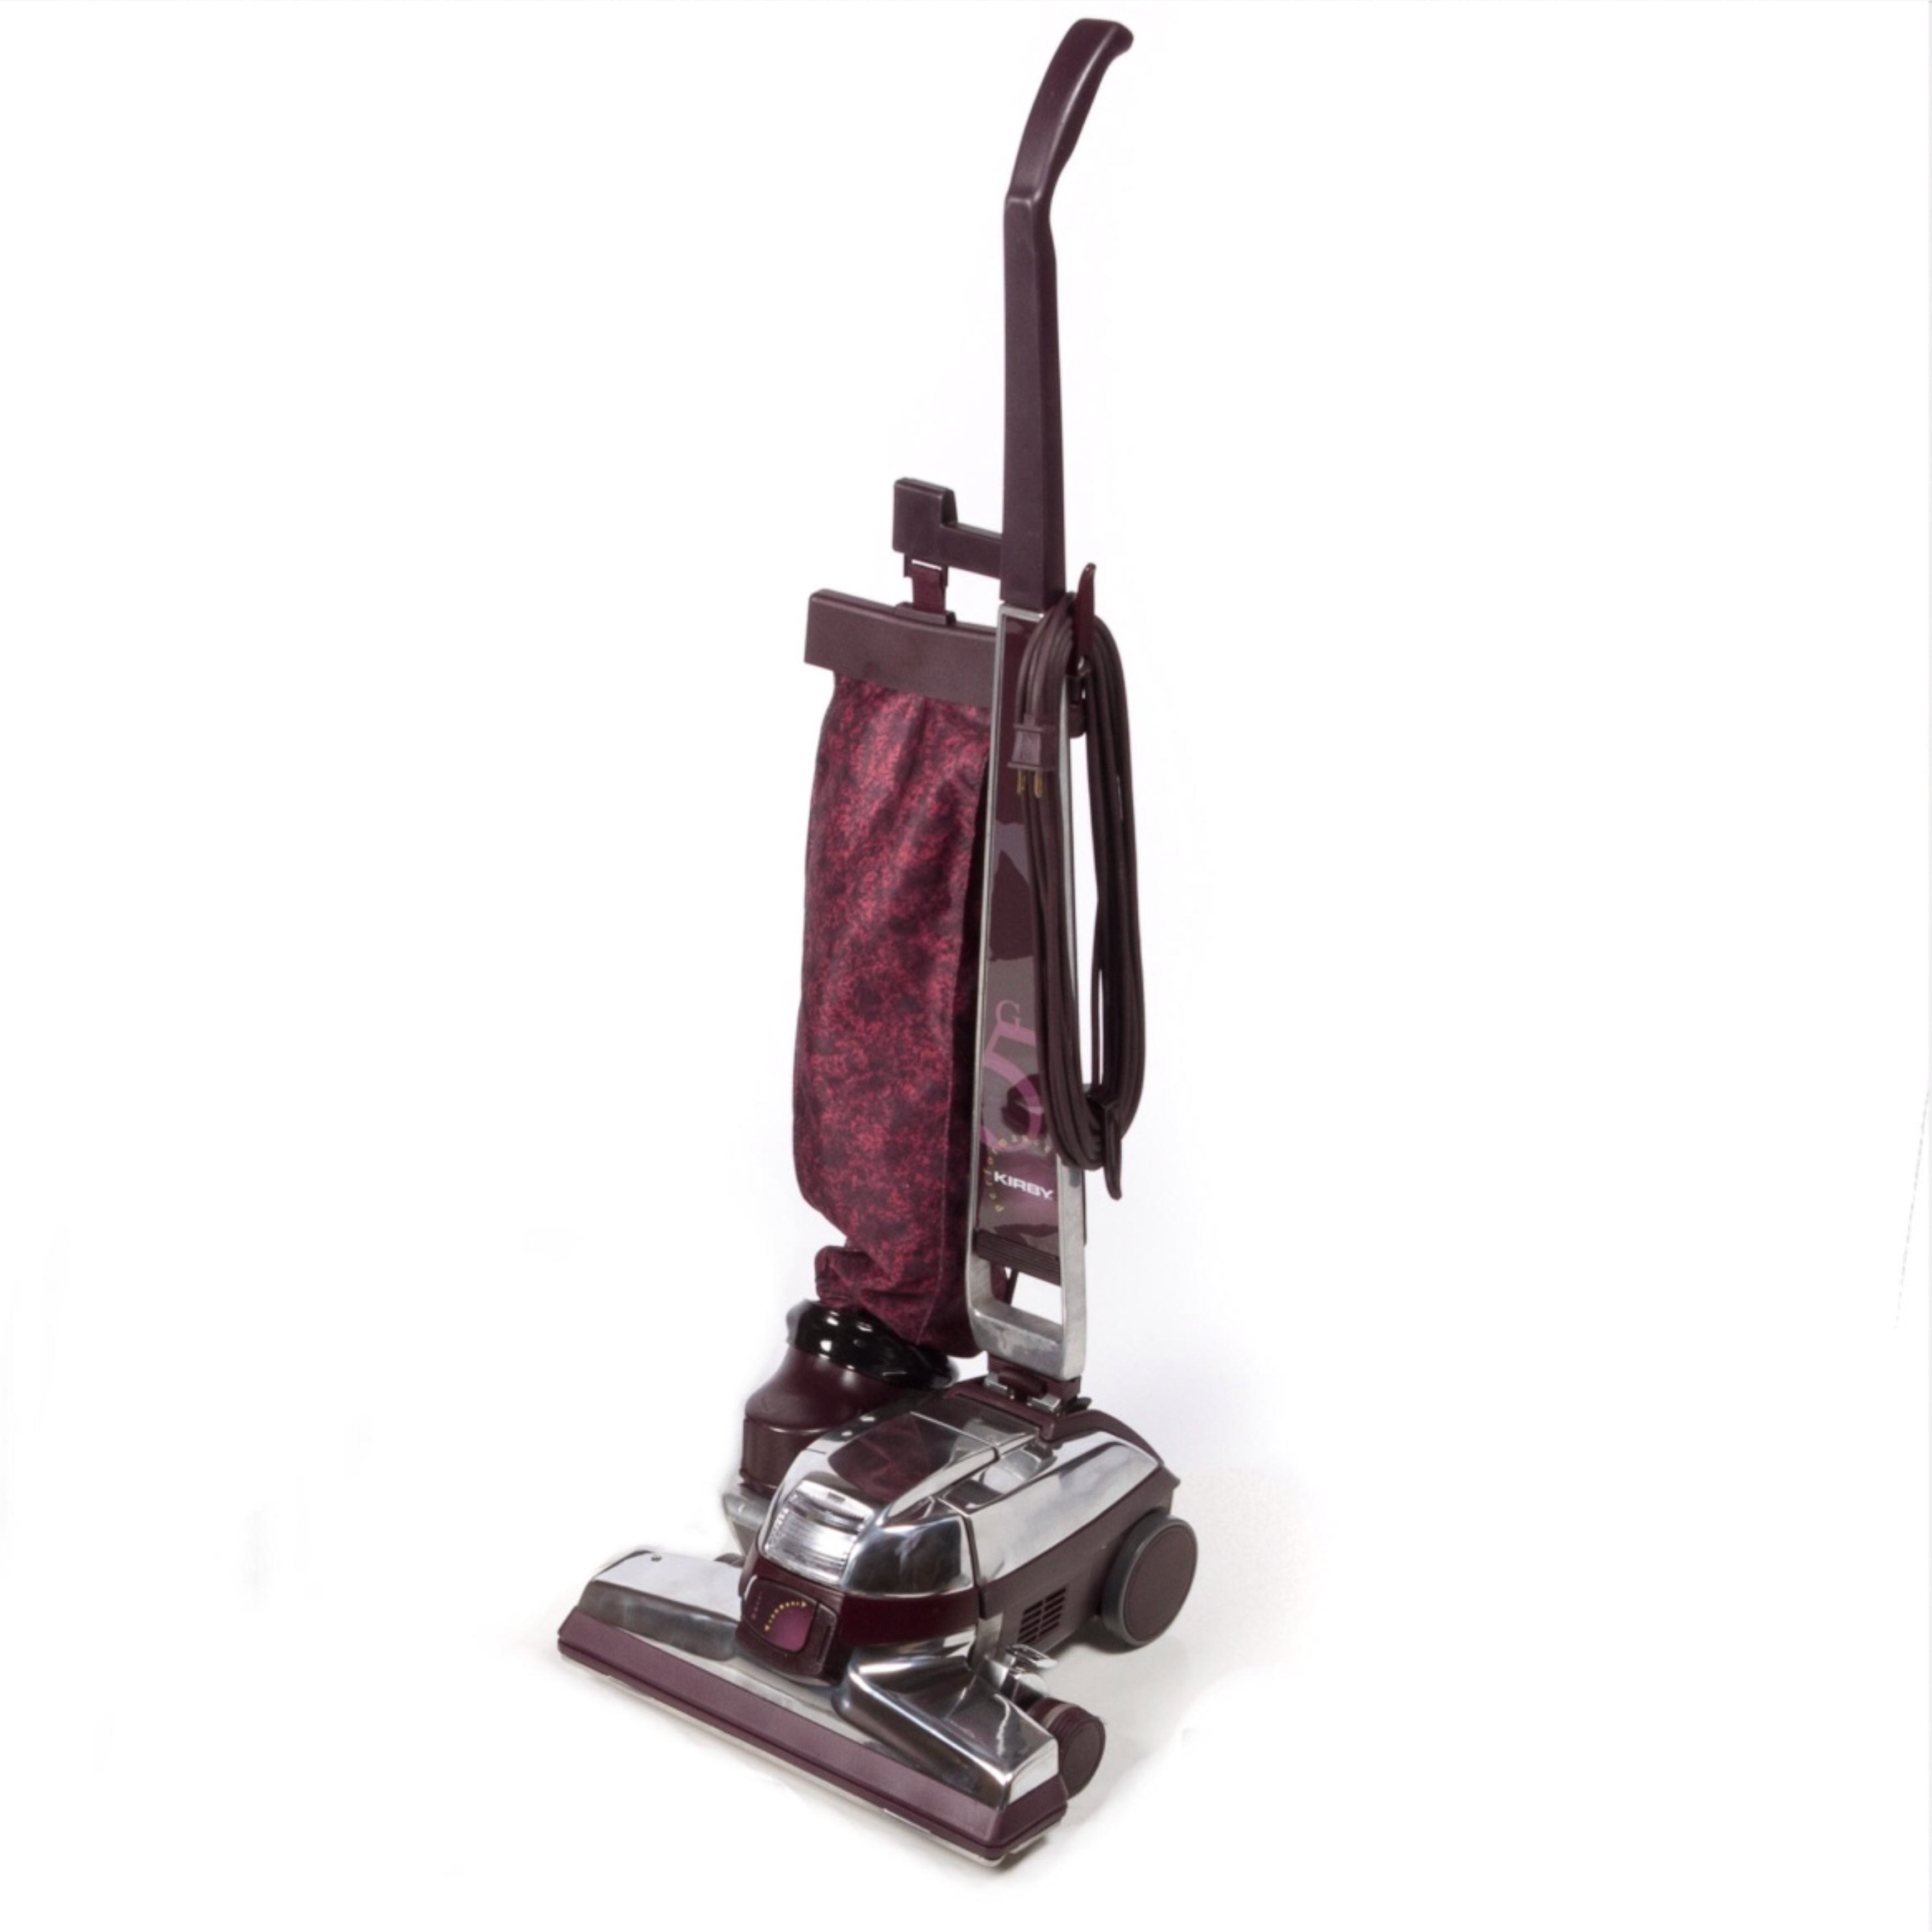 Kirby K120v G5 Deep Cleaner Vacuum Refurbished Free Shipping Today 2971716